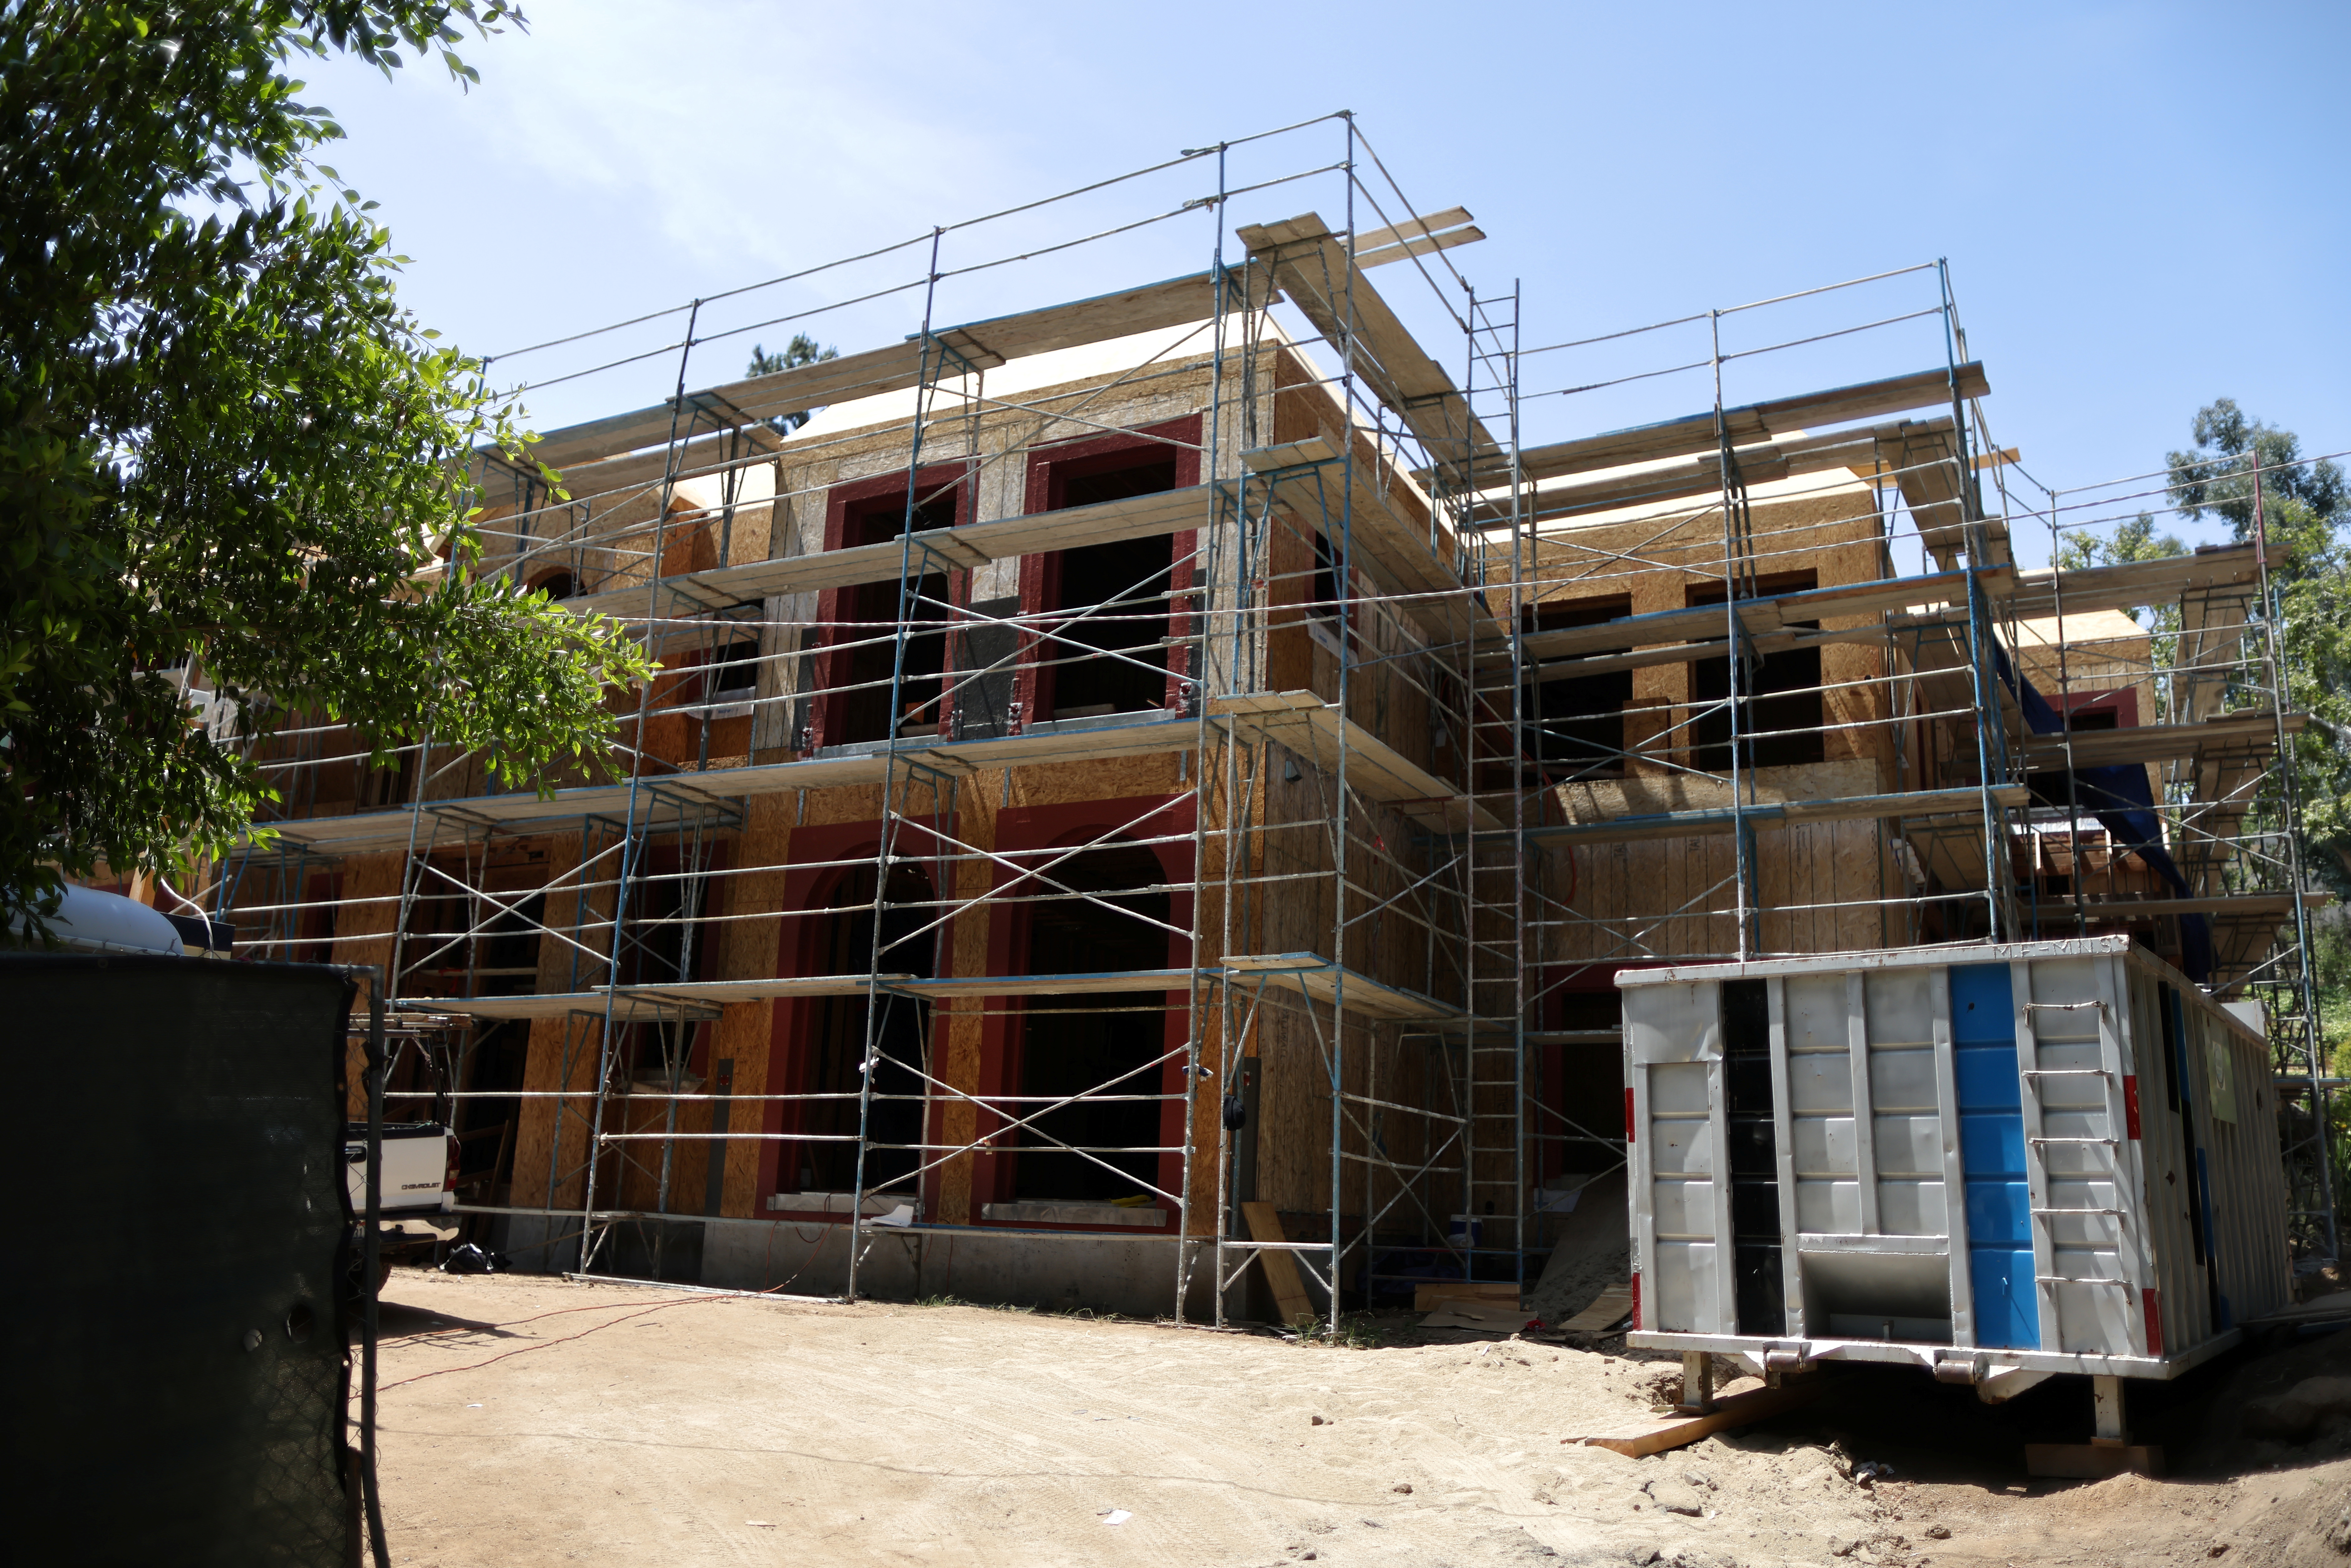 A new housing construction is seen as real estate prices rise in Beverly Hills, California, U.S., June 2, 2021. REUTERS/Lucy Nicholson